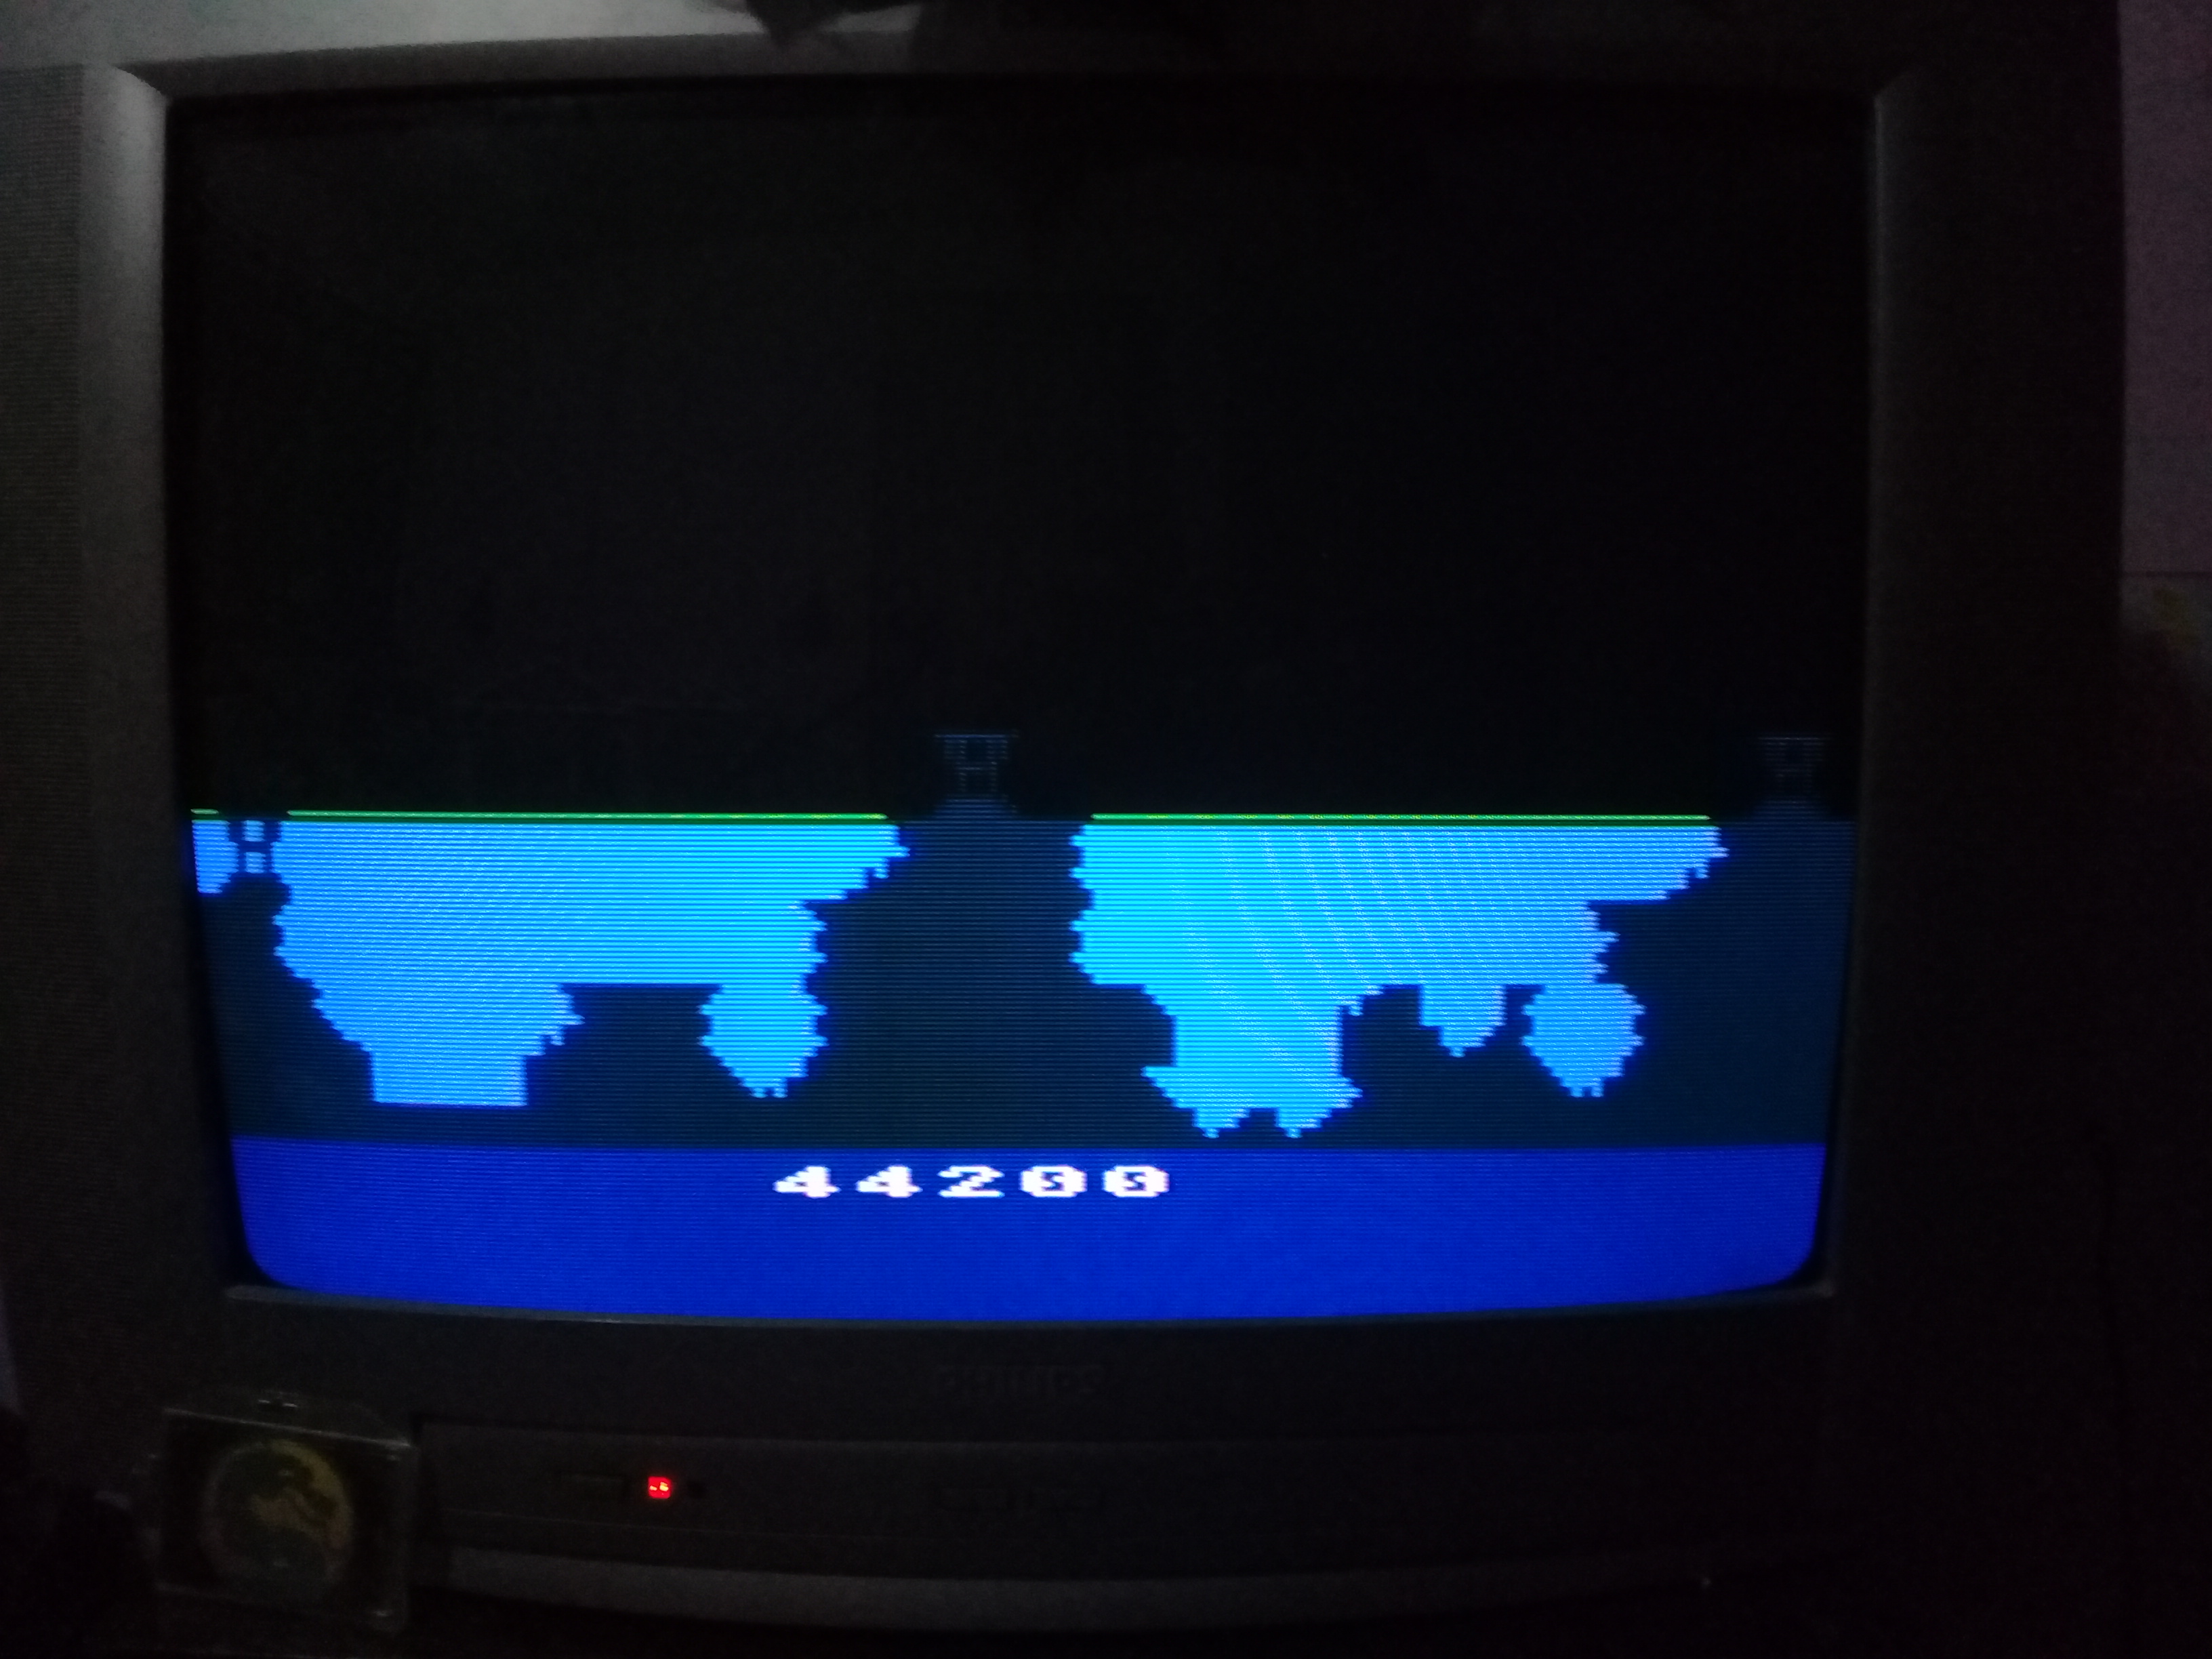 omargeddon: Atlantis (Atari 400/800/XL/XE) 44,200 points on 2020-03-09 01:20:38